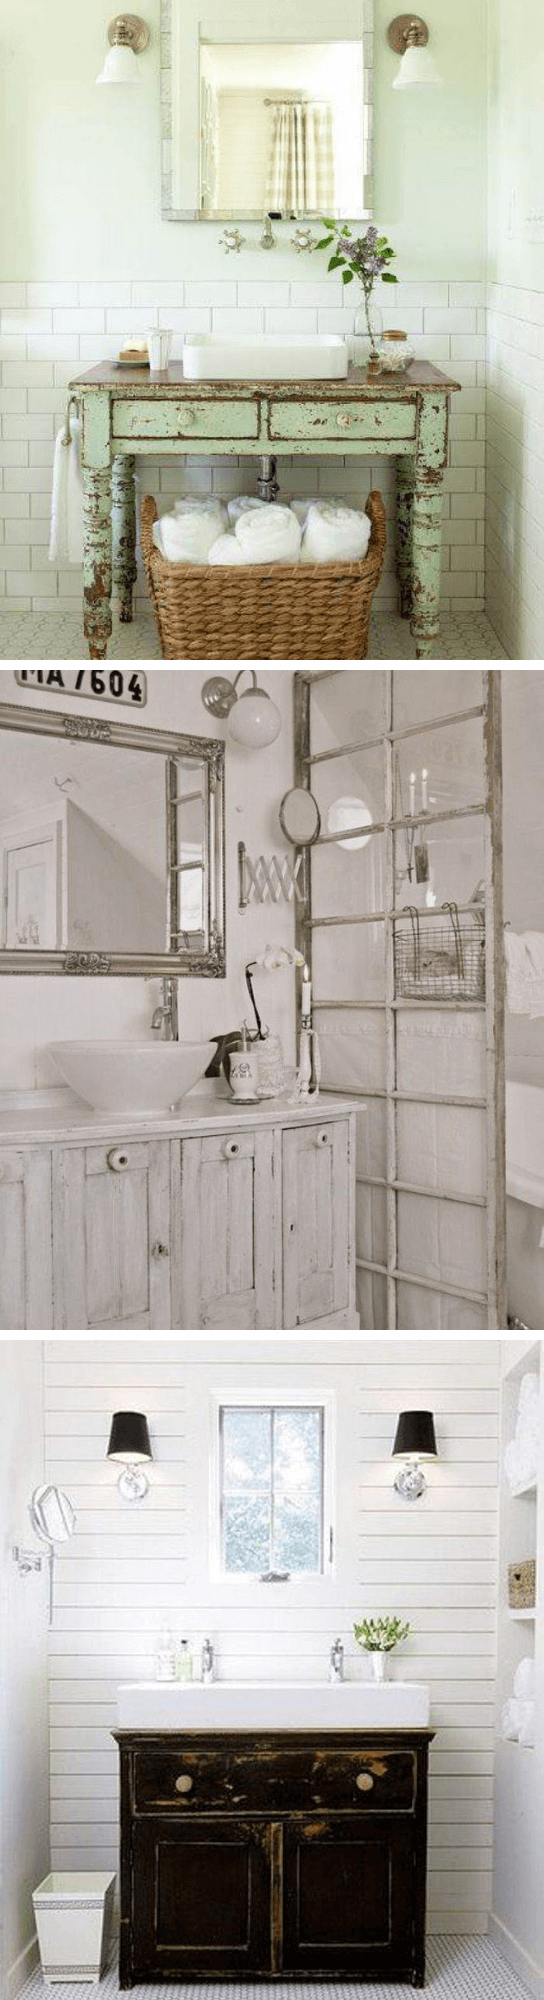 Charming Cottage Style Bathroom Ideas A painted chest drawer in bathroom